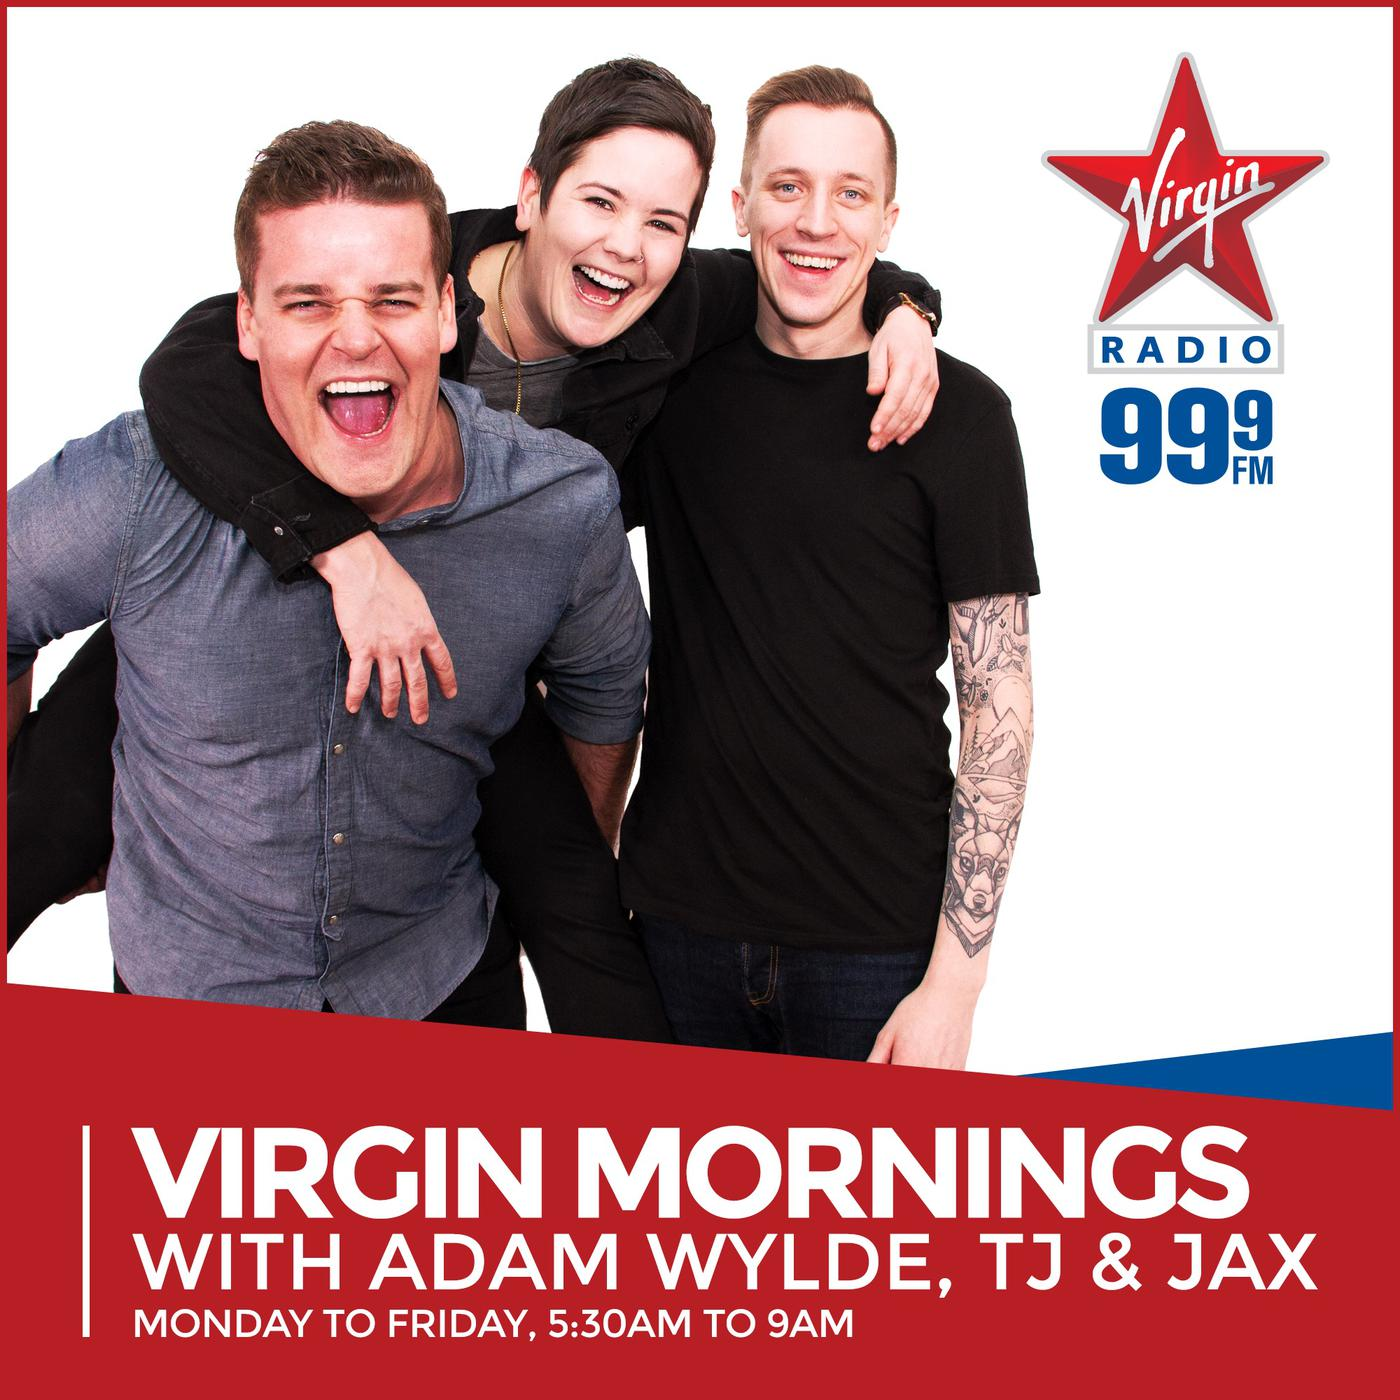 Virgin Mornings with Adam Wylde & TJ (podcast) - Adam Wylde, TJ